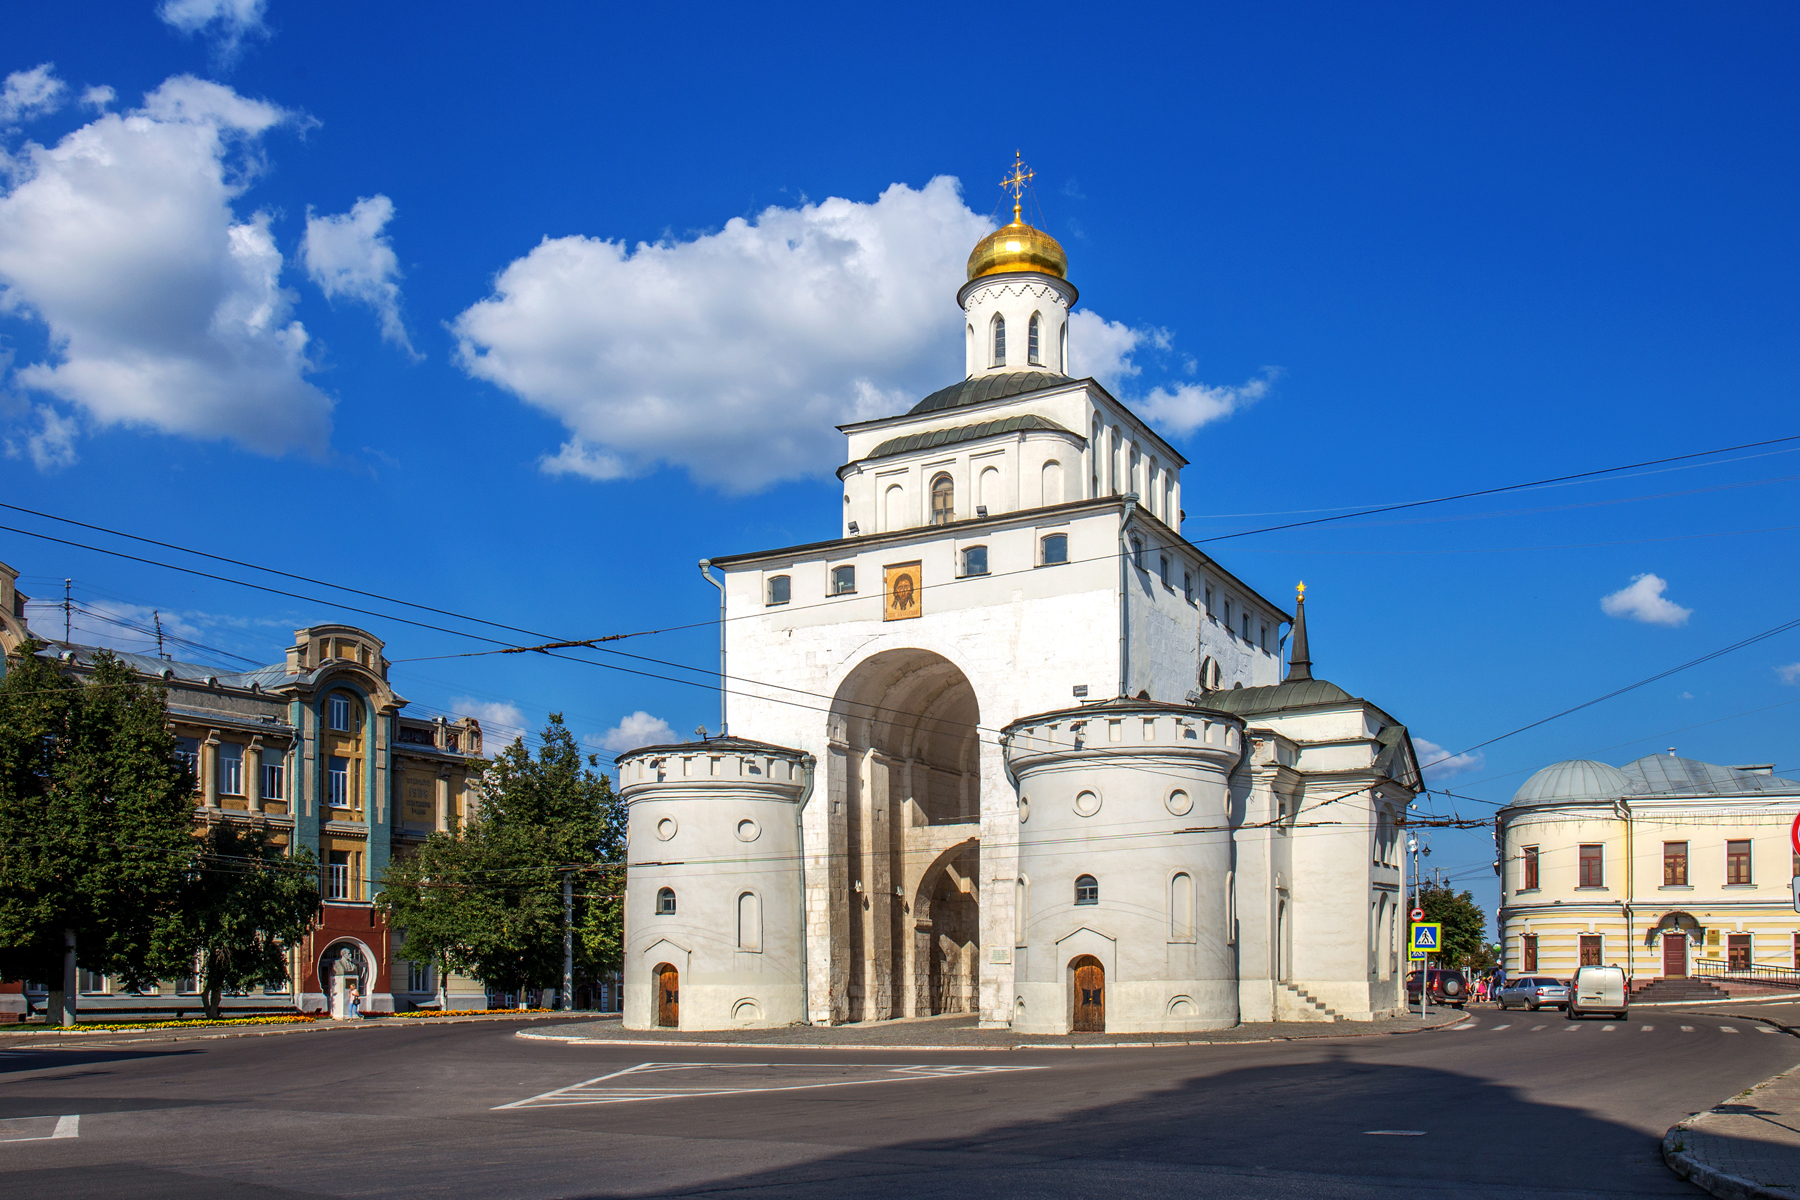 The Golden Gates in Vladimir